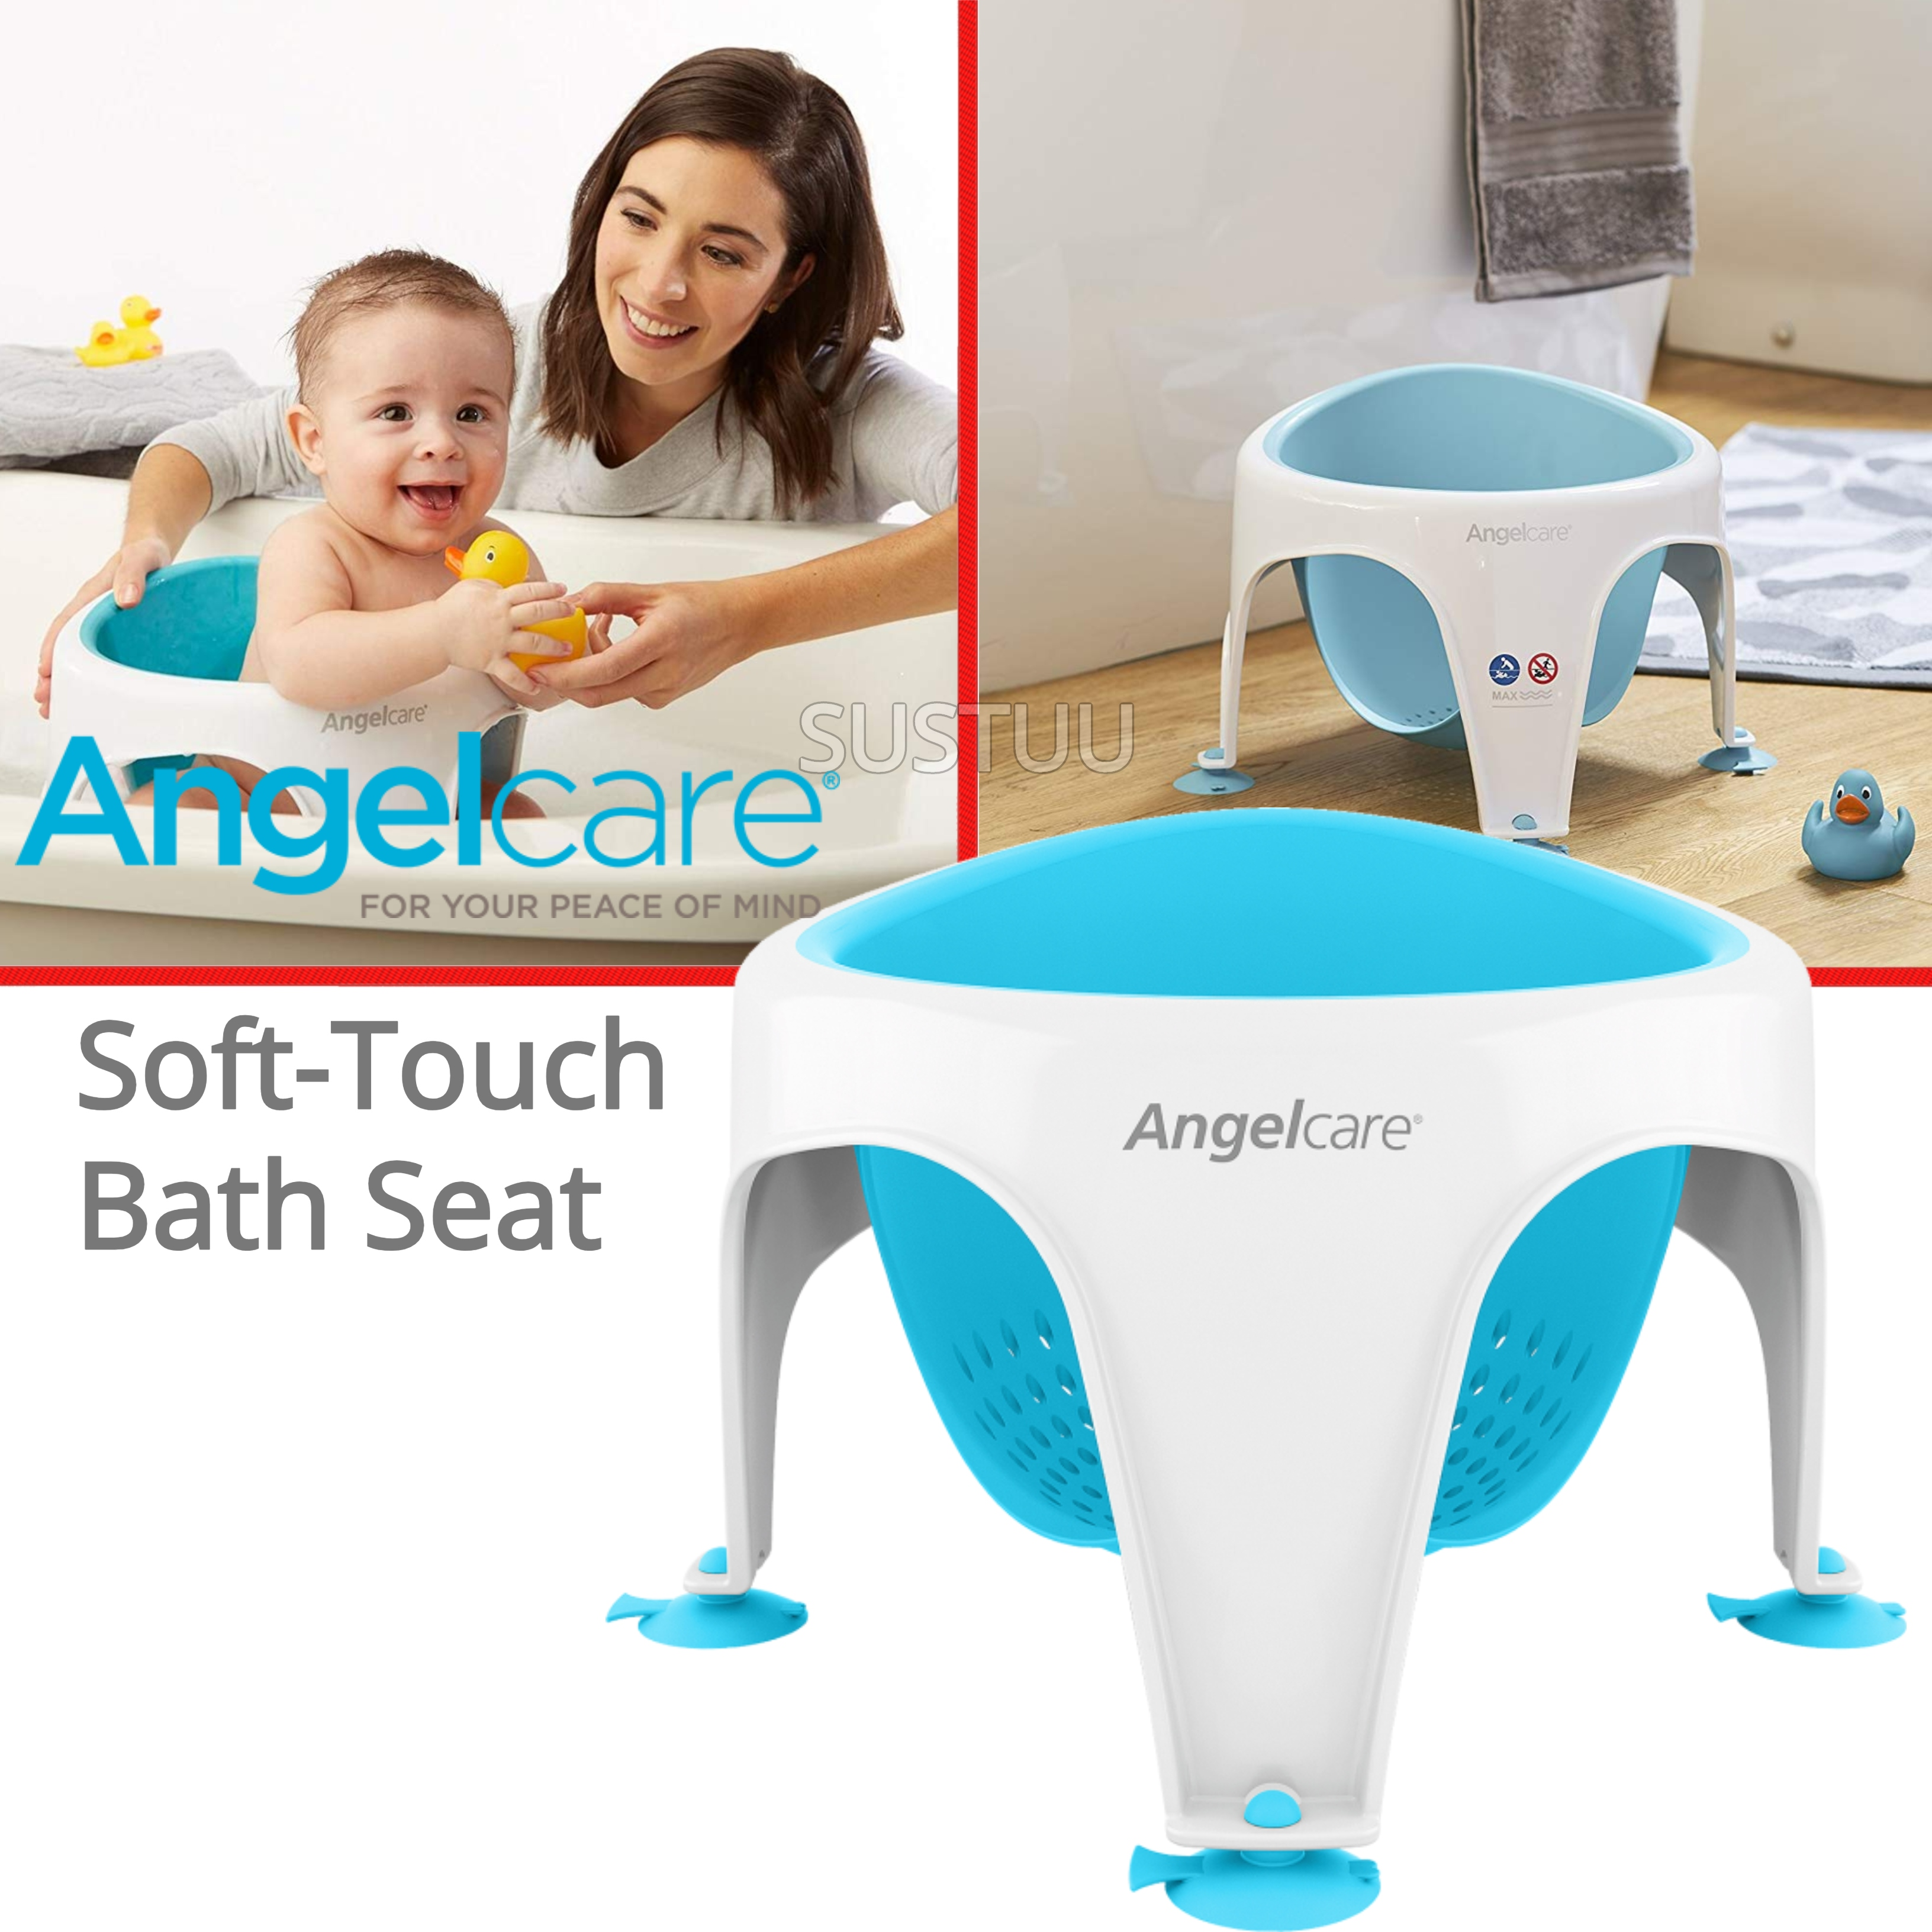 Angelcare Soft-Touch Baby Bath Seat Aqua|Lightweight|TPE Material|12kg Capicity